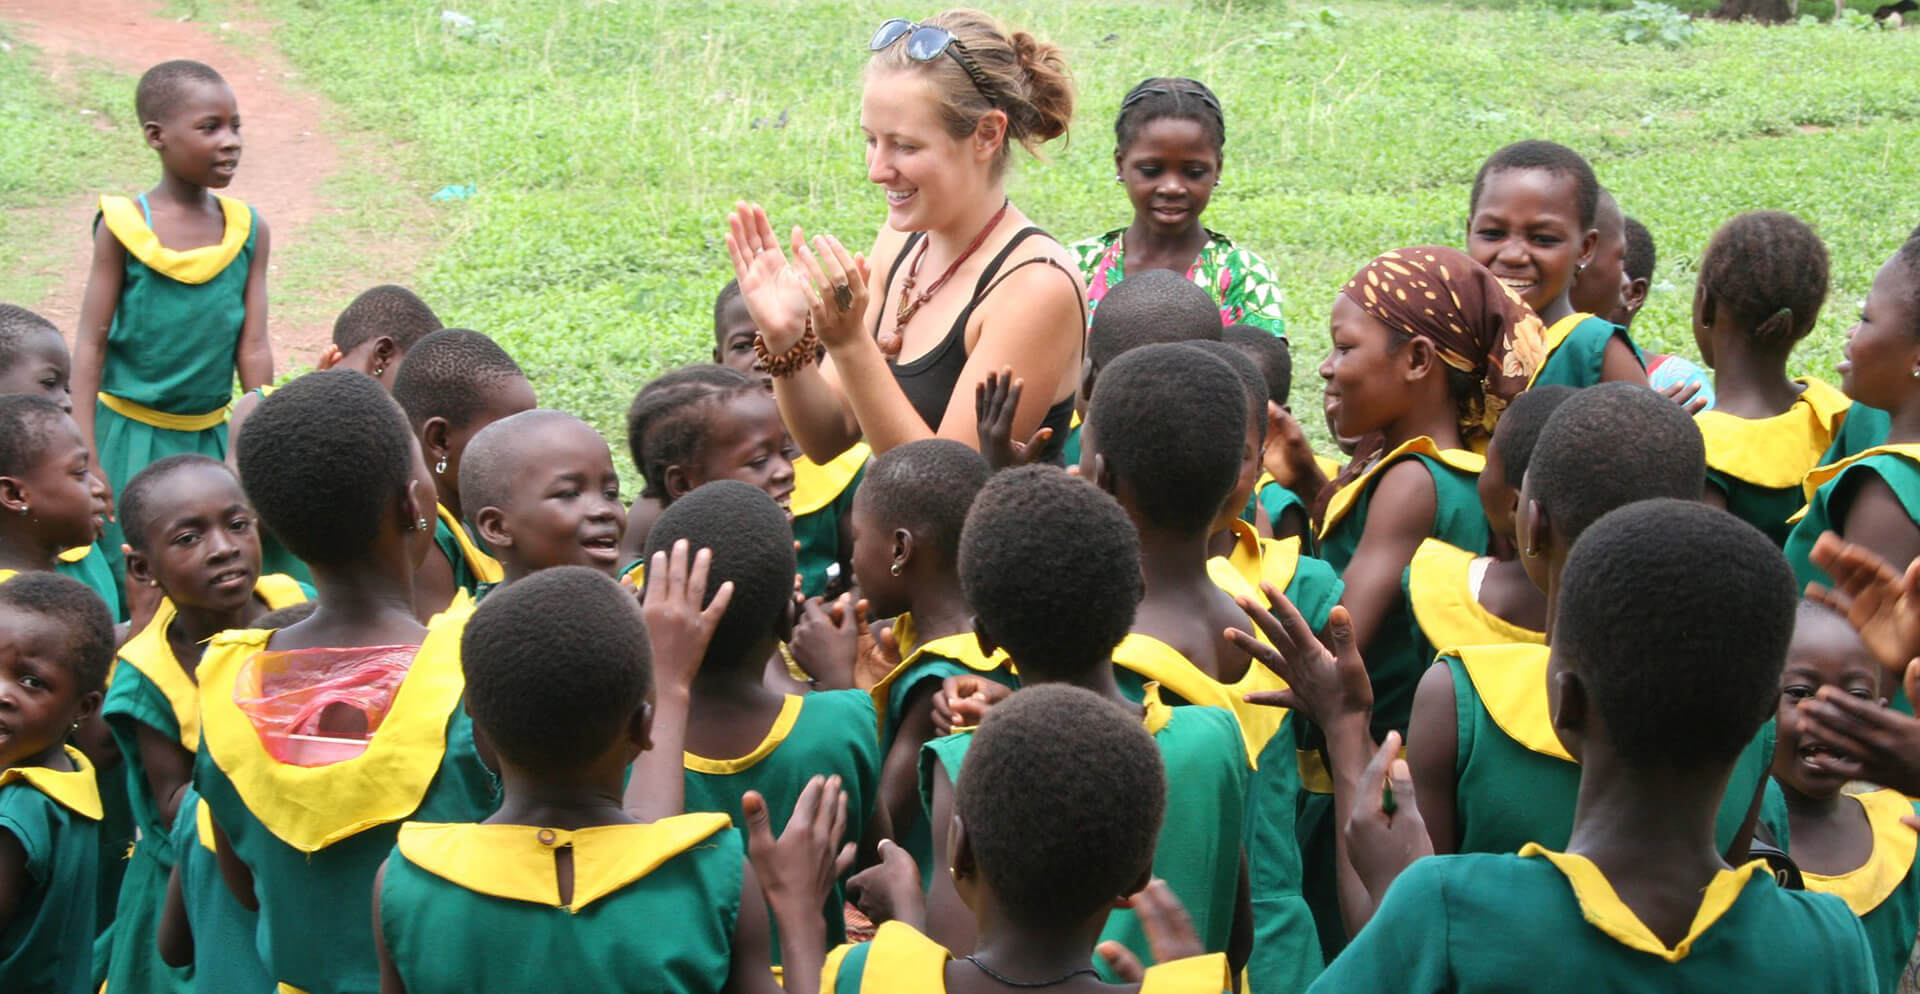 Meet Amy Elizabeth, Volunteer in Ghana